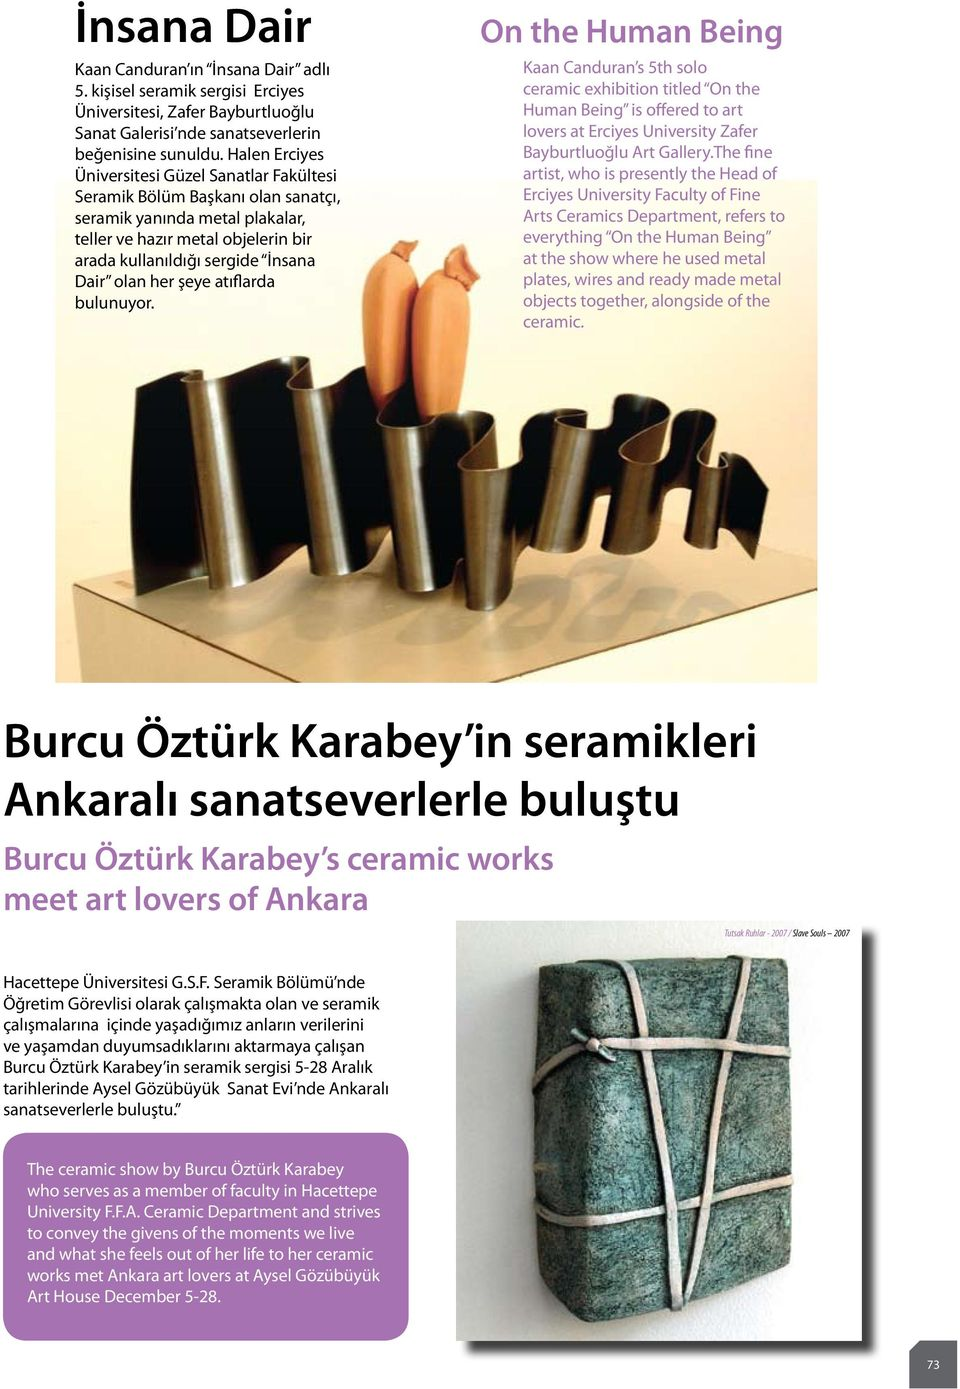 her şeye atıflarda bulunuyor. On the Human Being Kaan Canduran s 5th solo ceramic exhibition titled On the Human Being is offered to art lovers at Erciyes University Zafer Bayburtluoğlu Art Gallery.